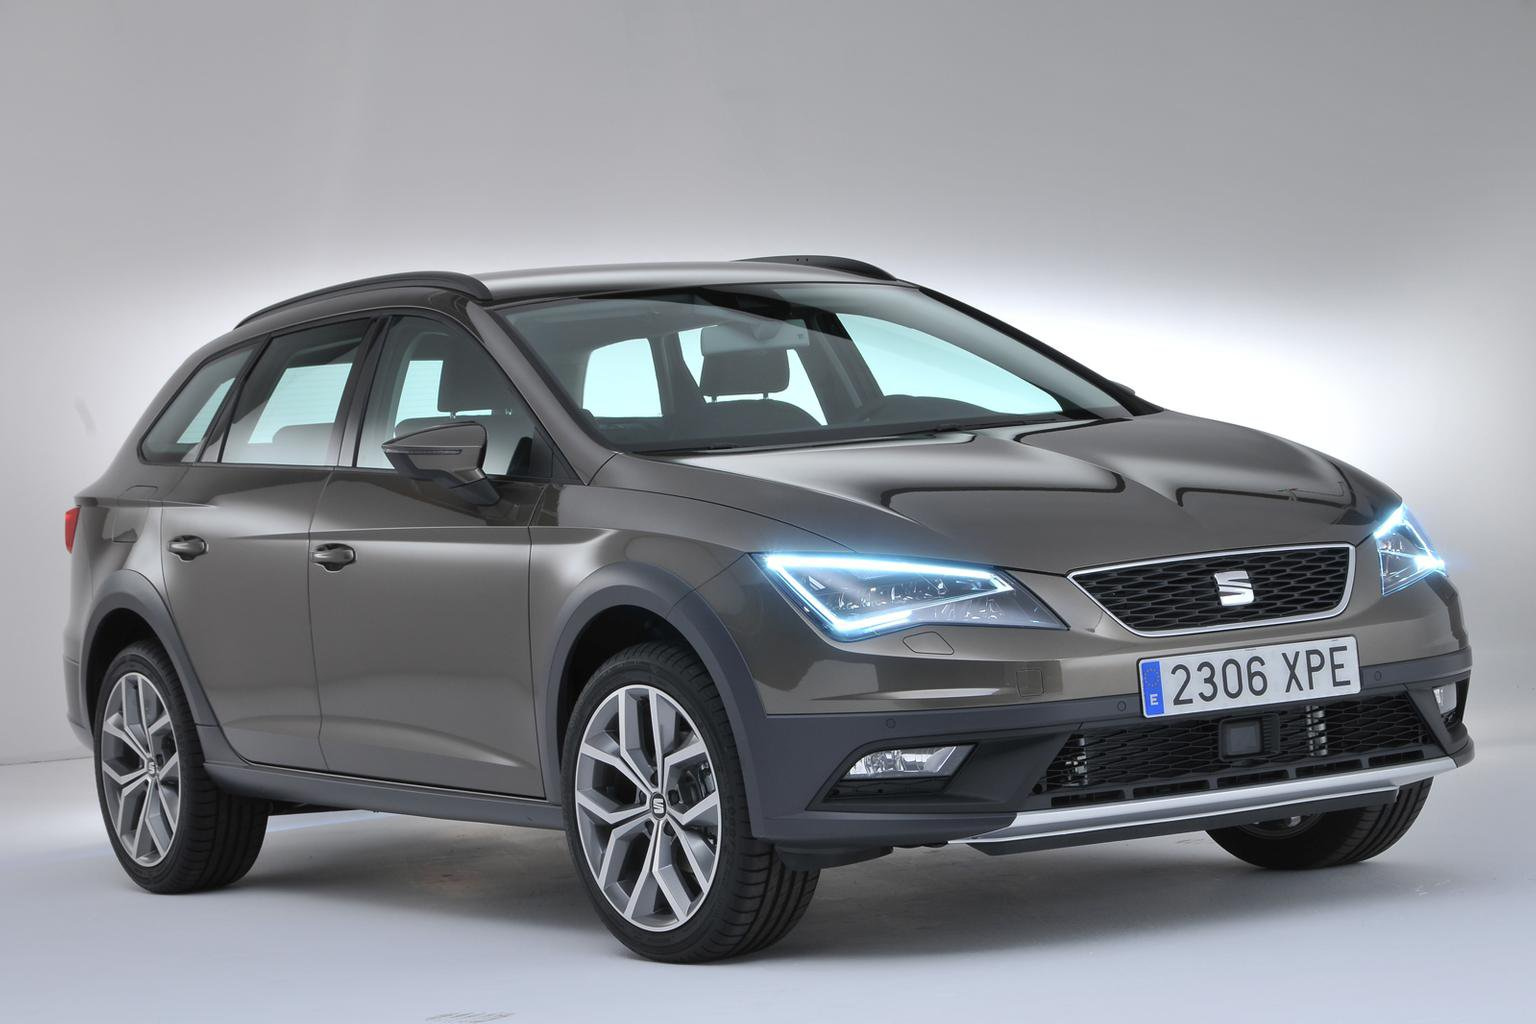 2014 Seat Leon ST X-Perience revealed - exclusive pictures